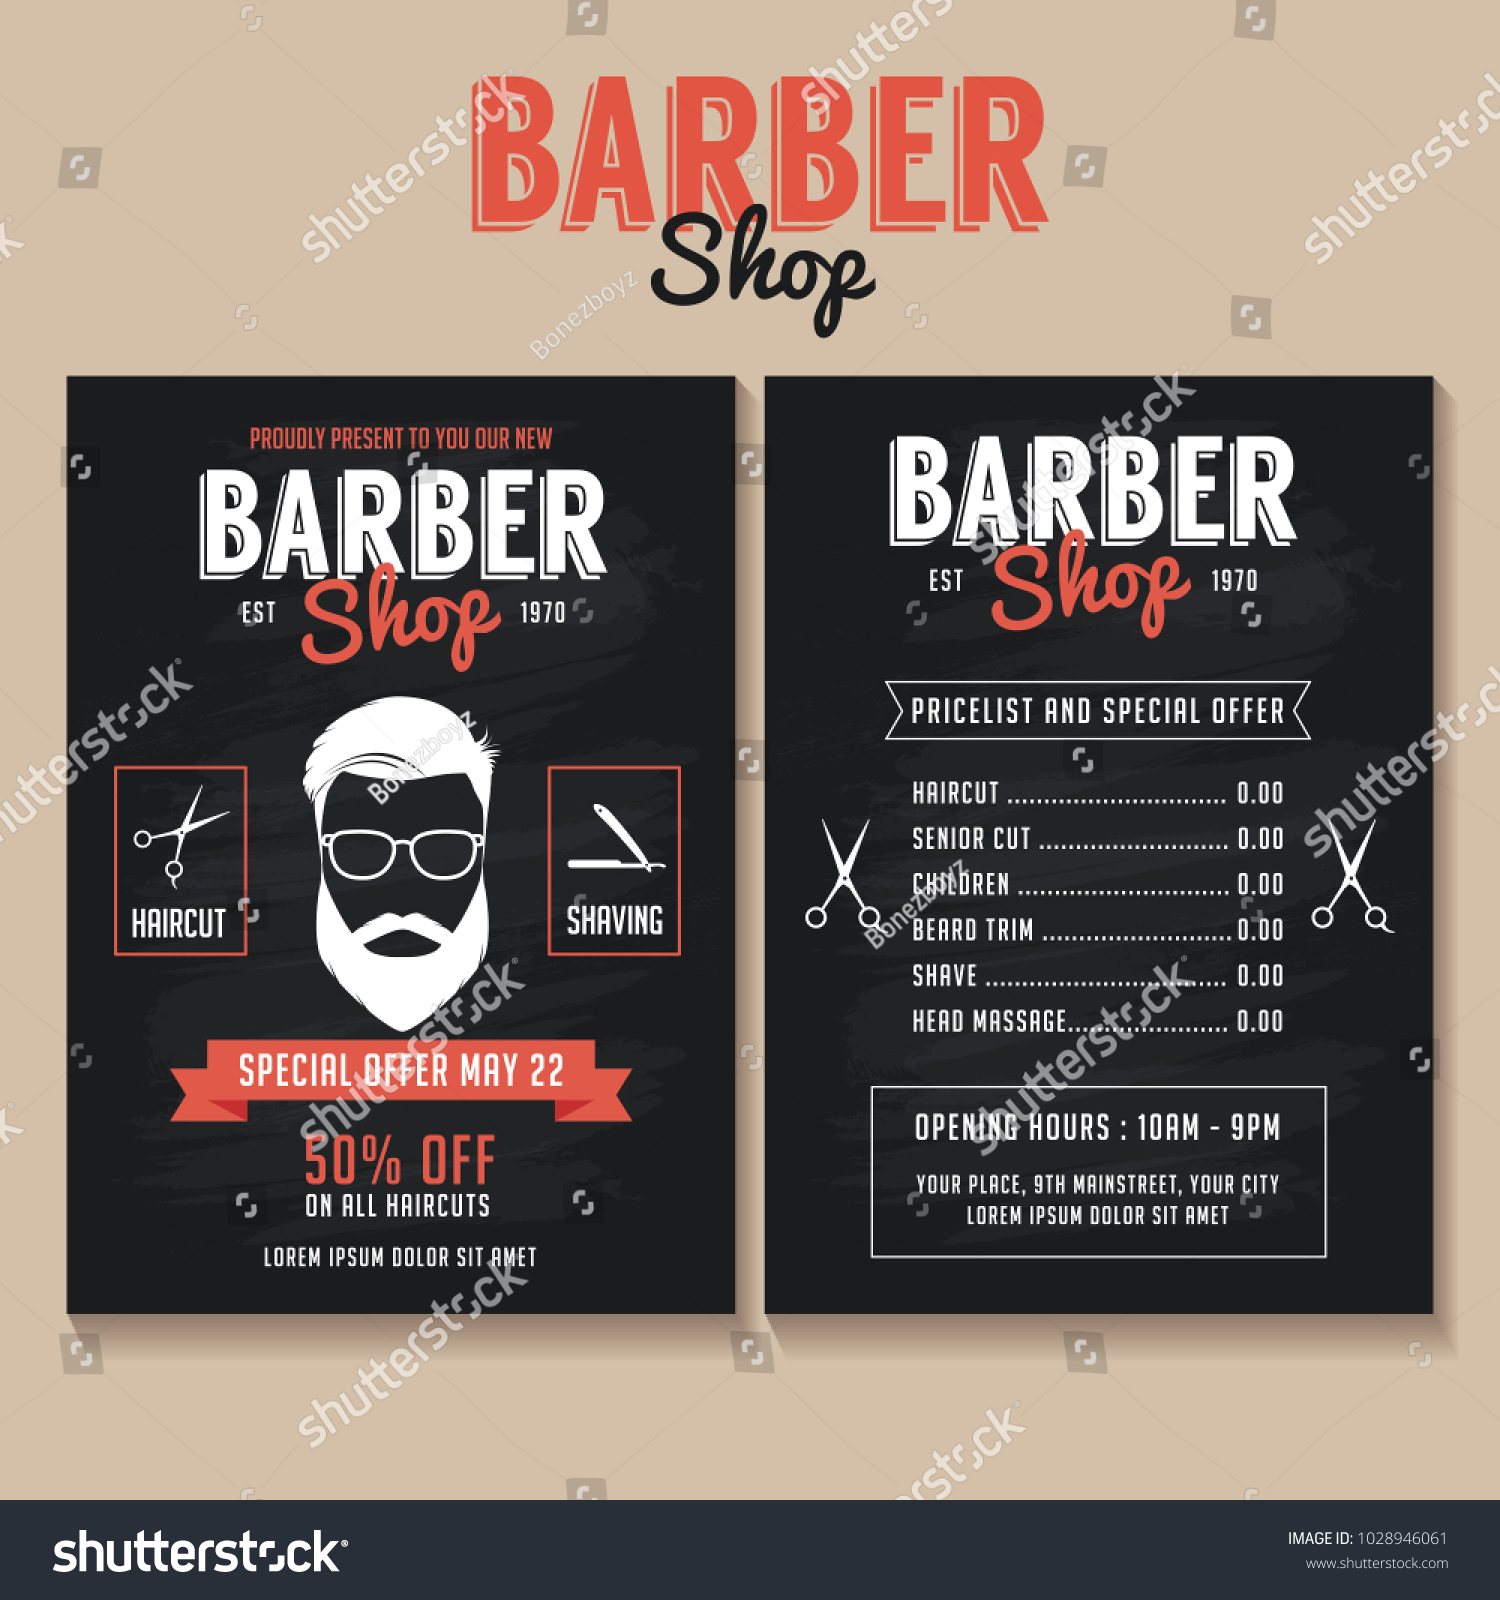 Barber Shop Flyer Template Price List Stock Vector Royalty Free